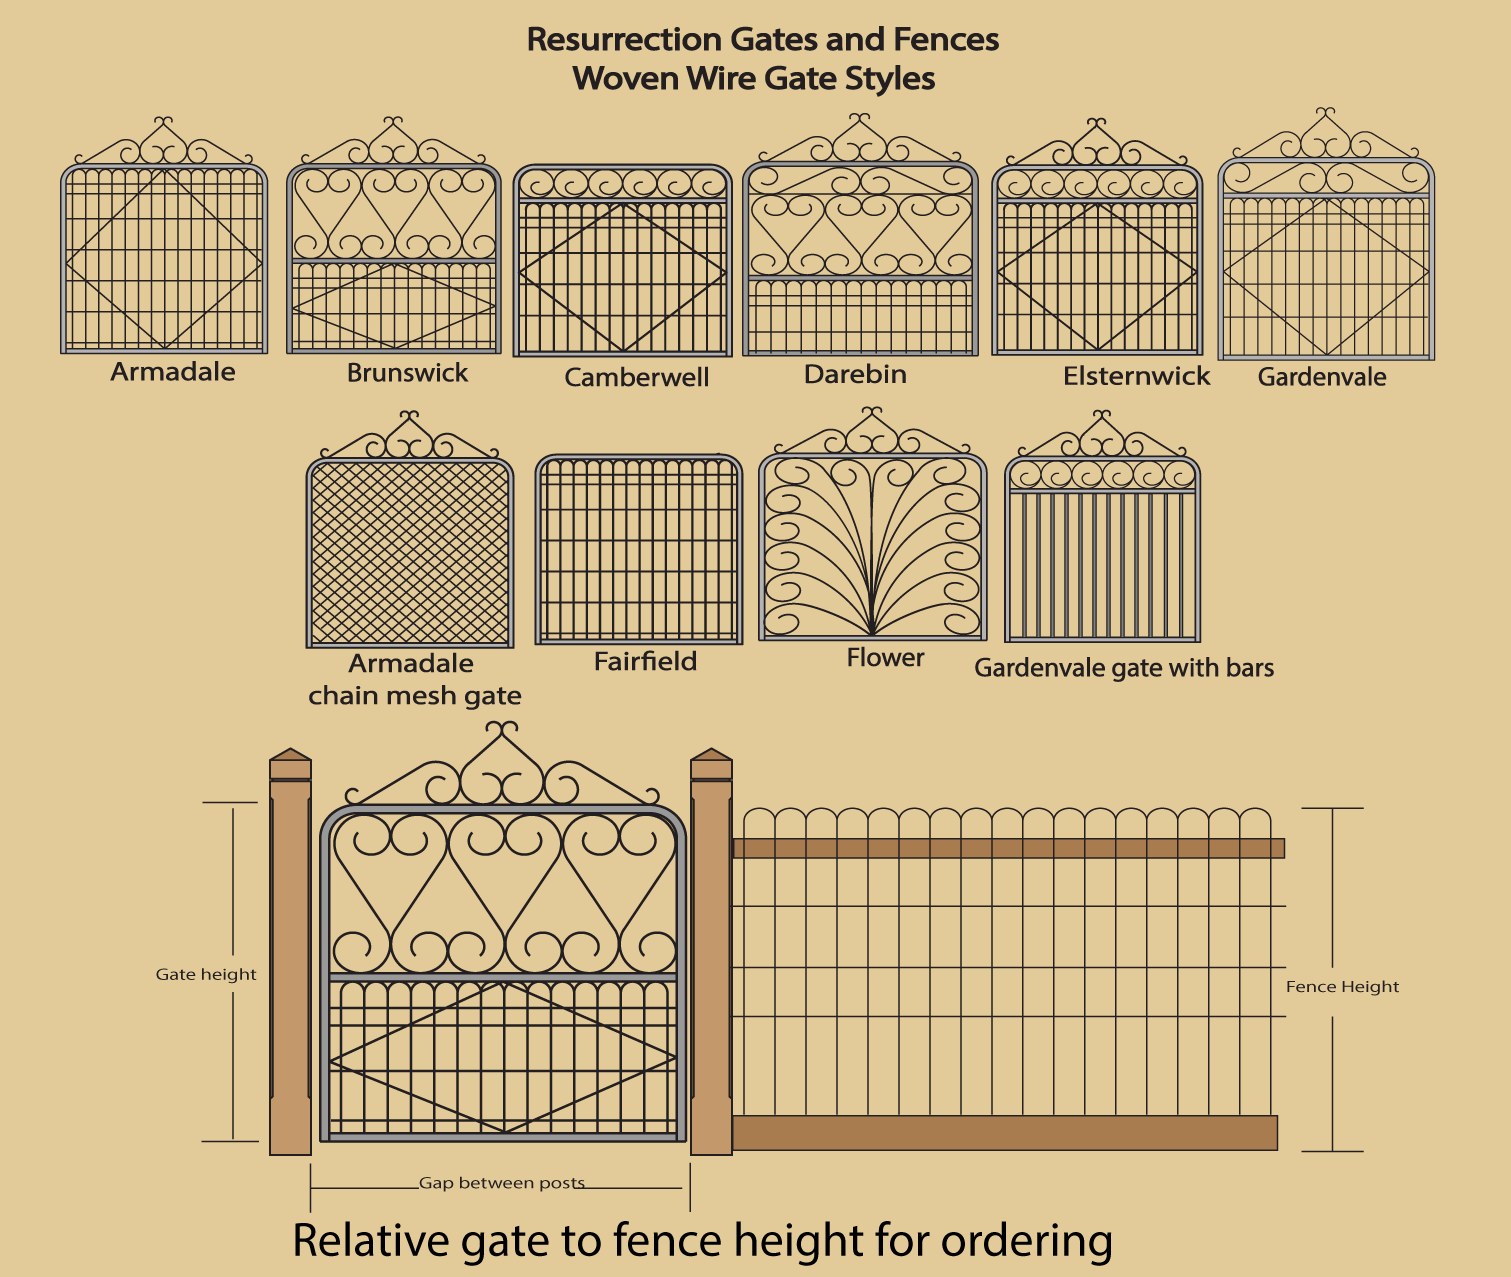 Woven Wire Gate styles and rule